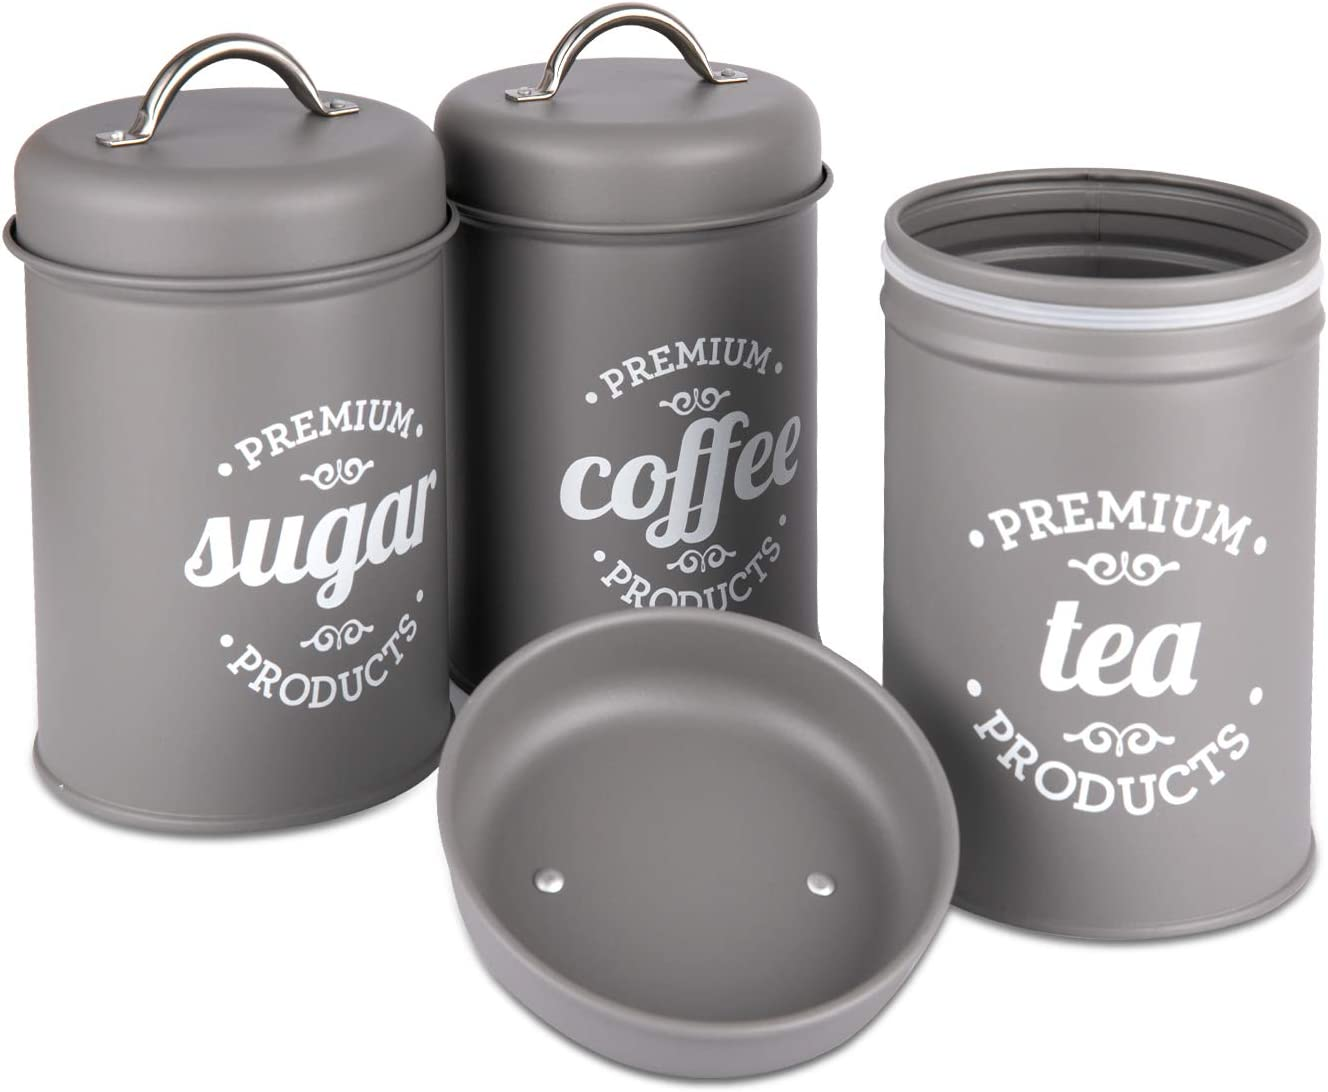 PILITO Set of 3 Airtight Kitchen Canister Decorations with Lids, Metal Rustic Farmhouse Country Decor Containers for Sugar Coffee Tea Storage (Gray)